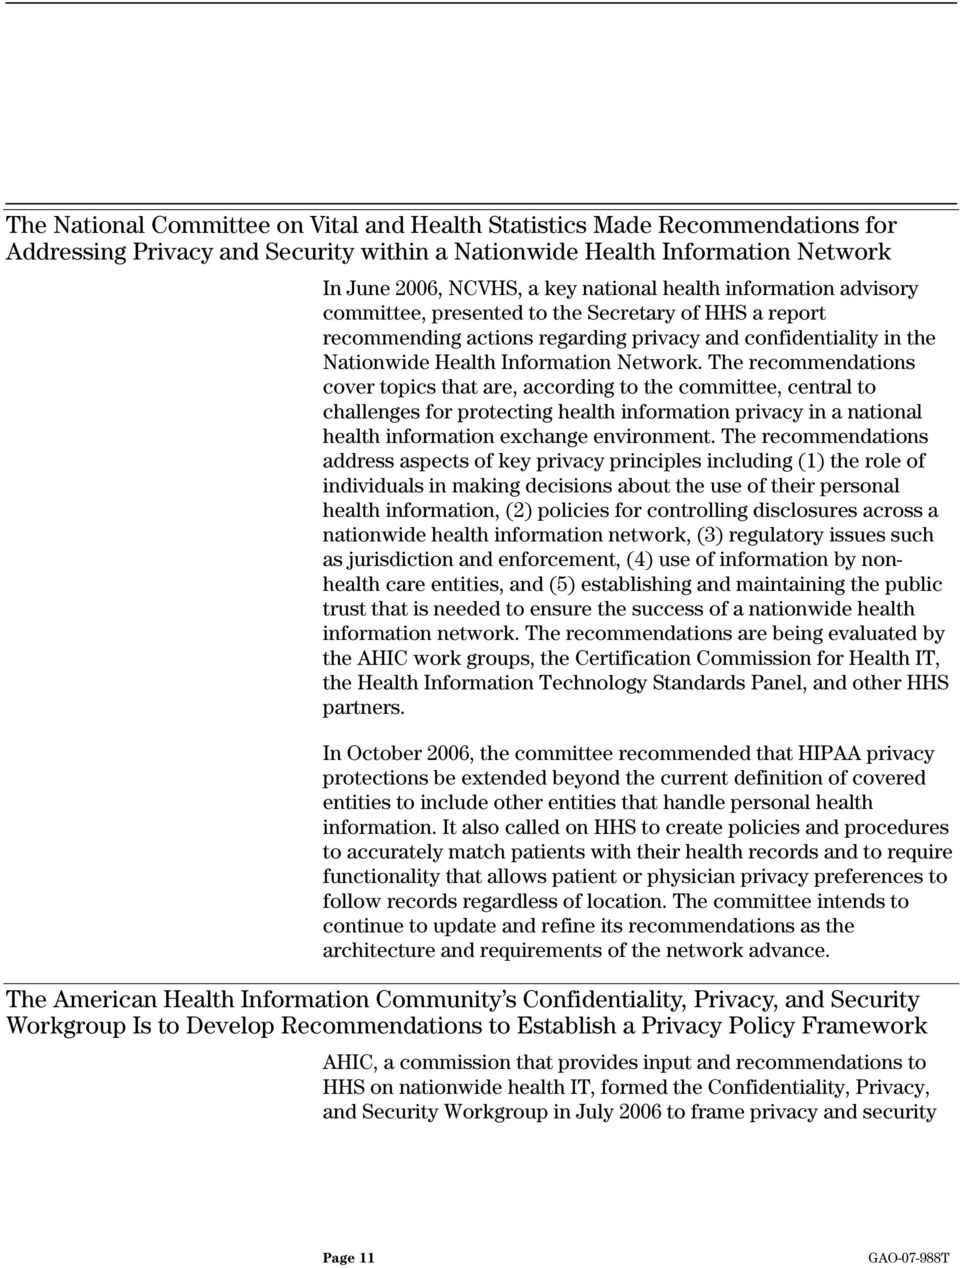 The recommendations cover topics that are, according to the committee, central to challenges for protecting health information privacy in a national health information exchange environment.